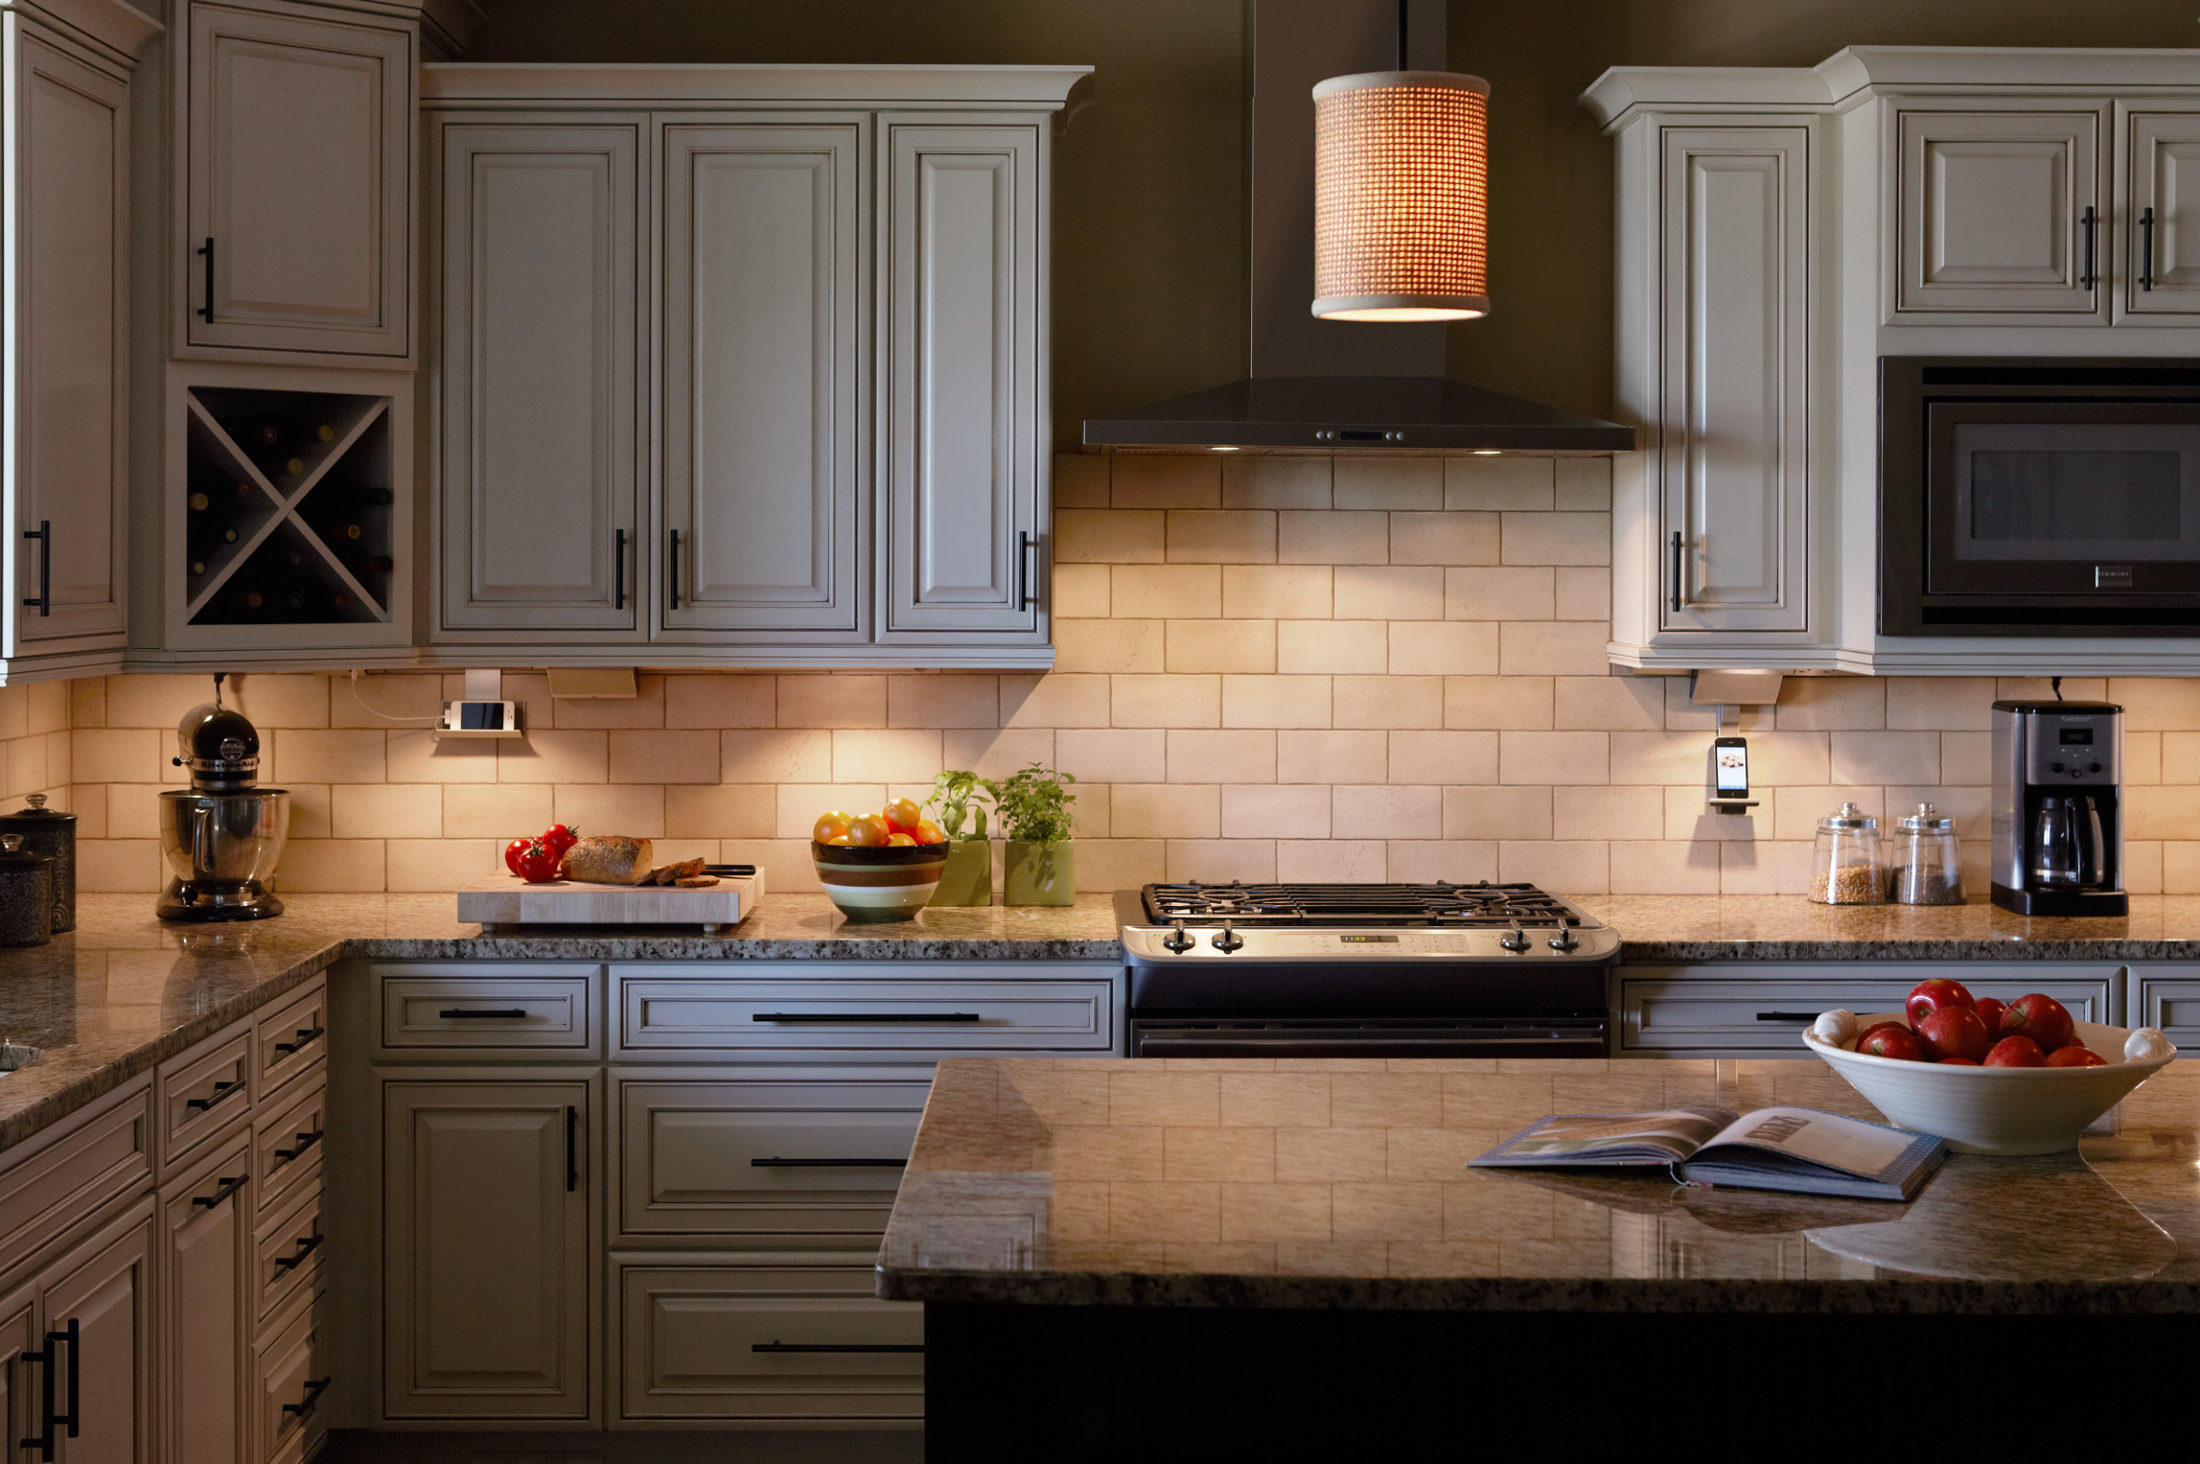 LED Kitchen Cabinet Lighting In Stock at Schillings